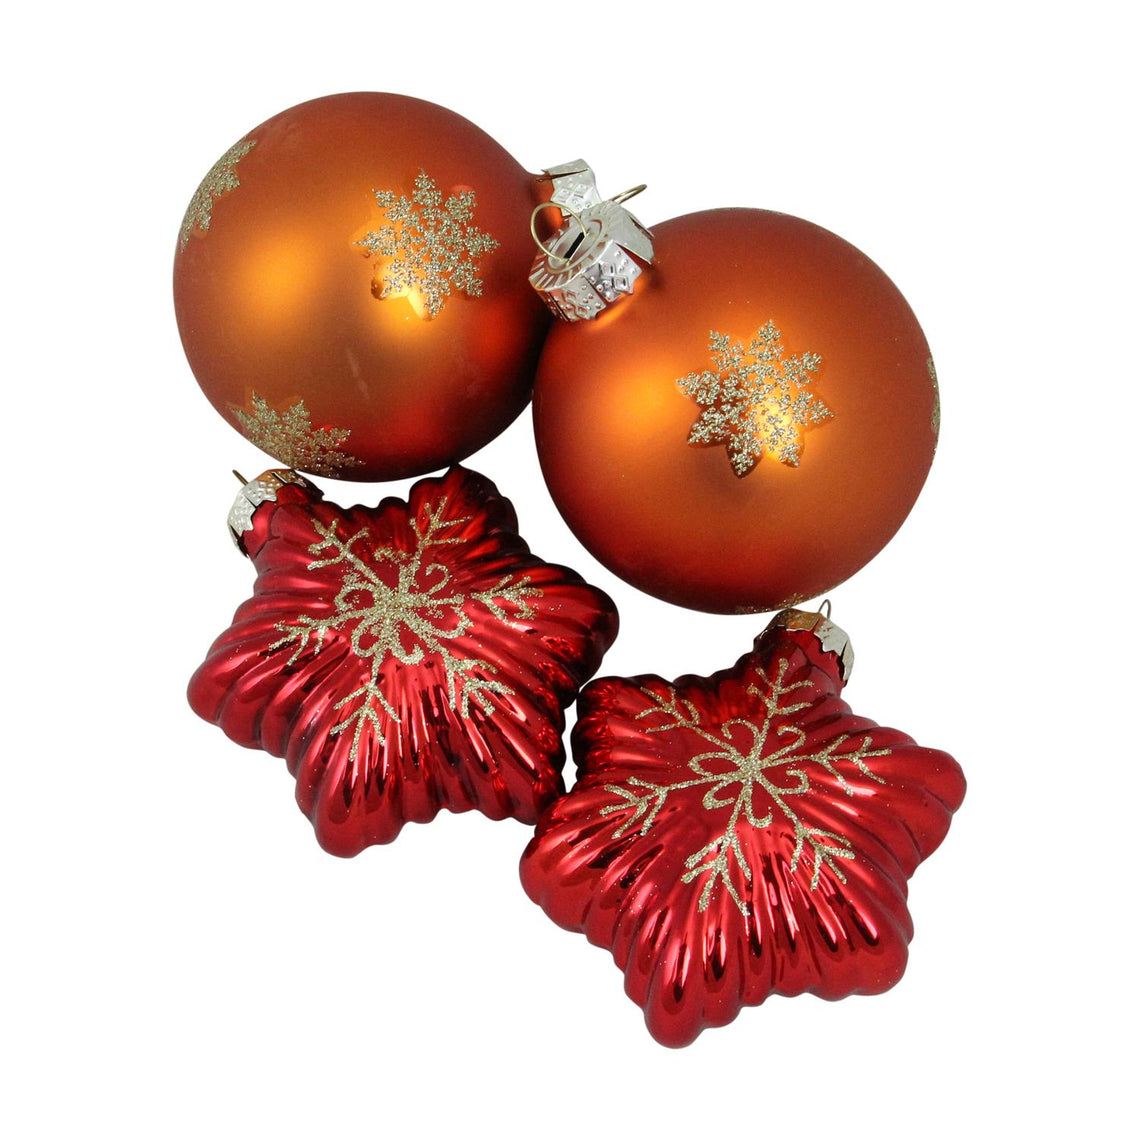 4ct Shiny Red Stars and Amber Orange Ball Design Glass Christmas Ornament Set